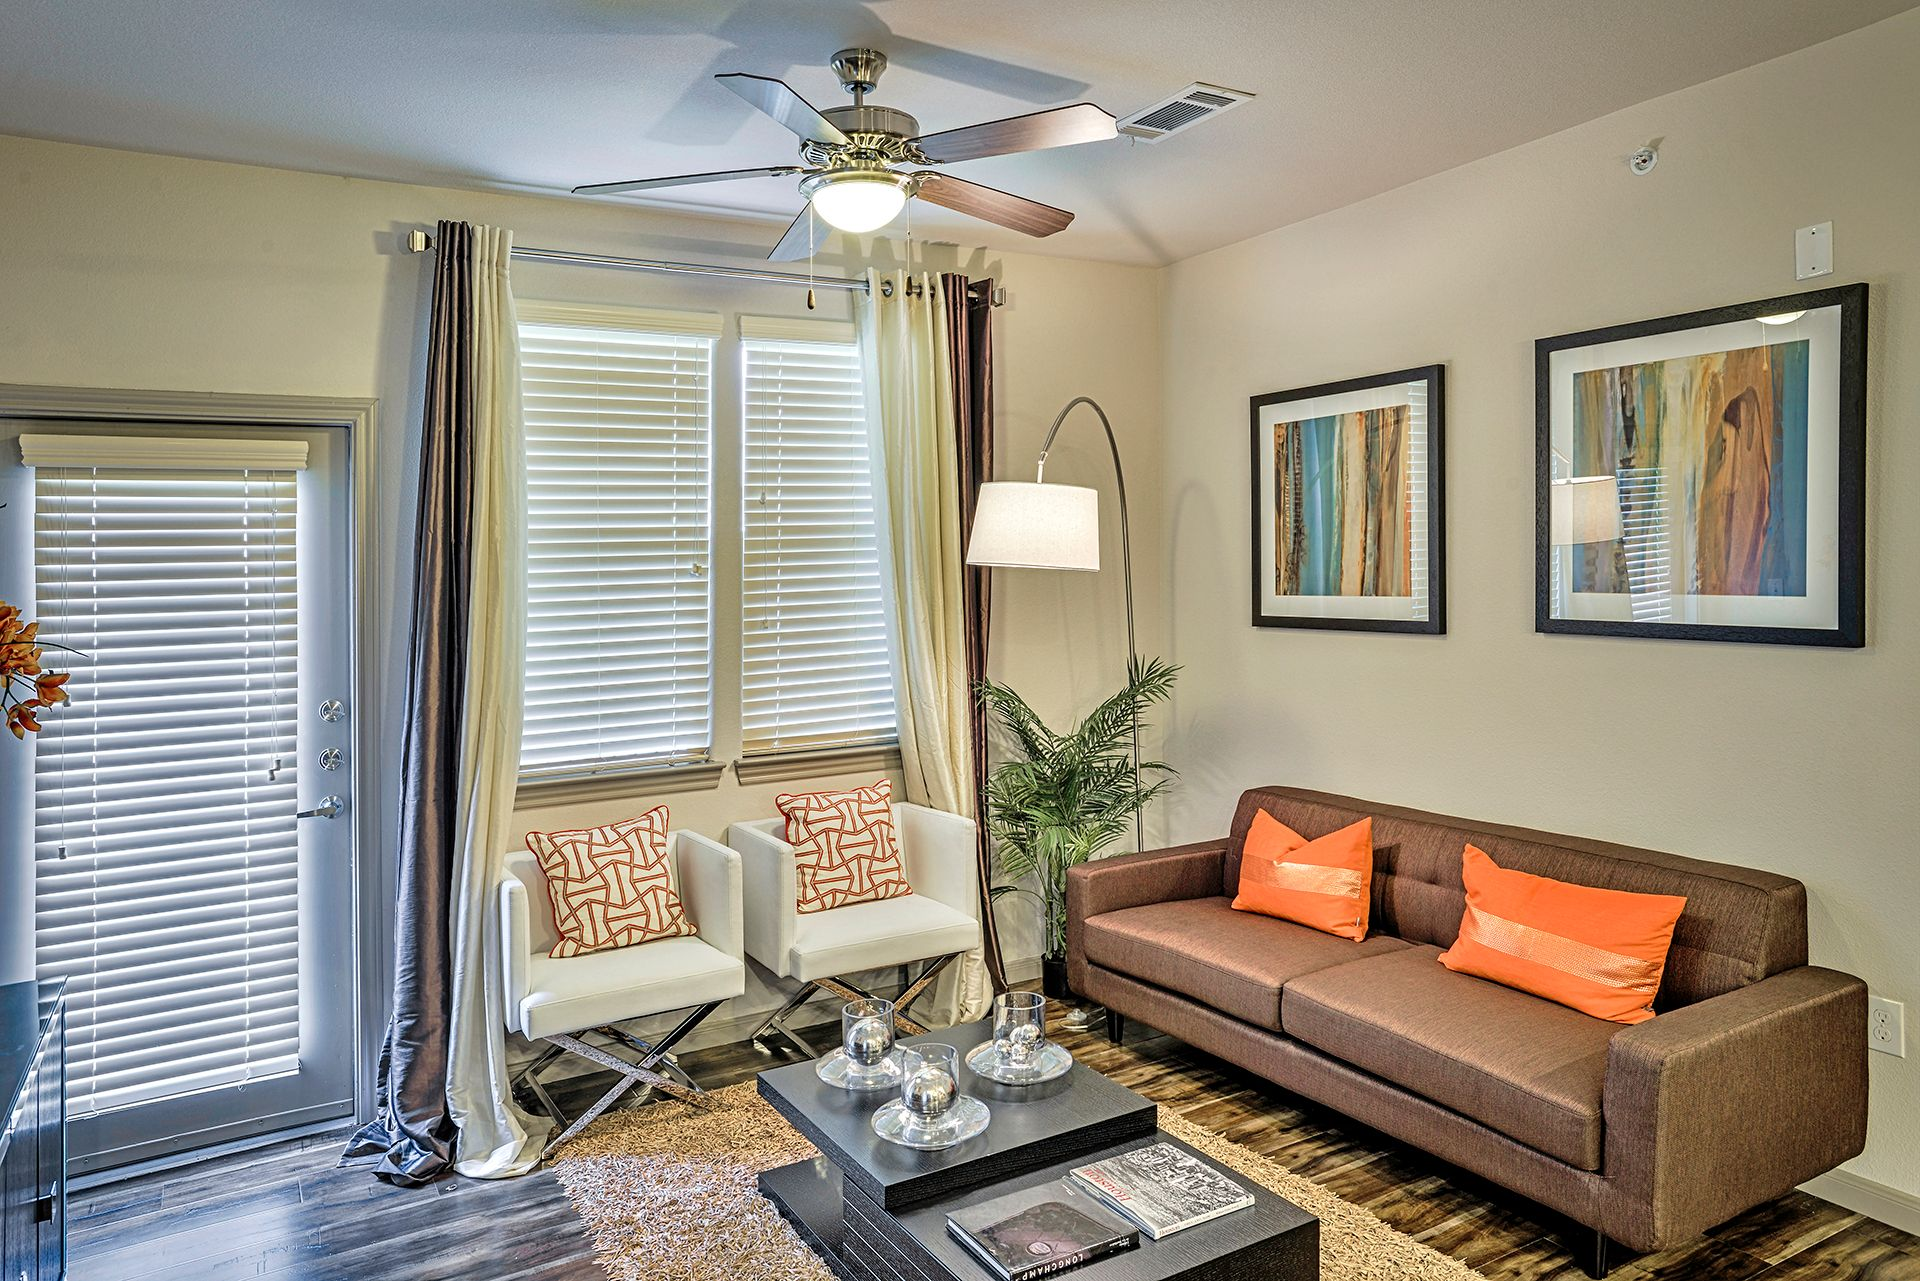 living room with ceiling fan and couch